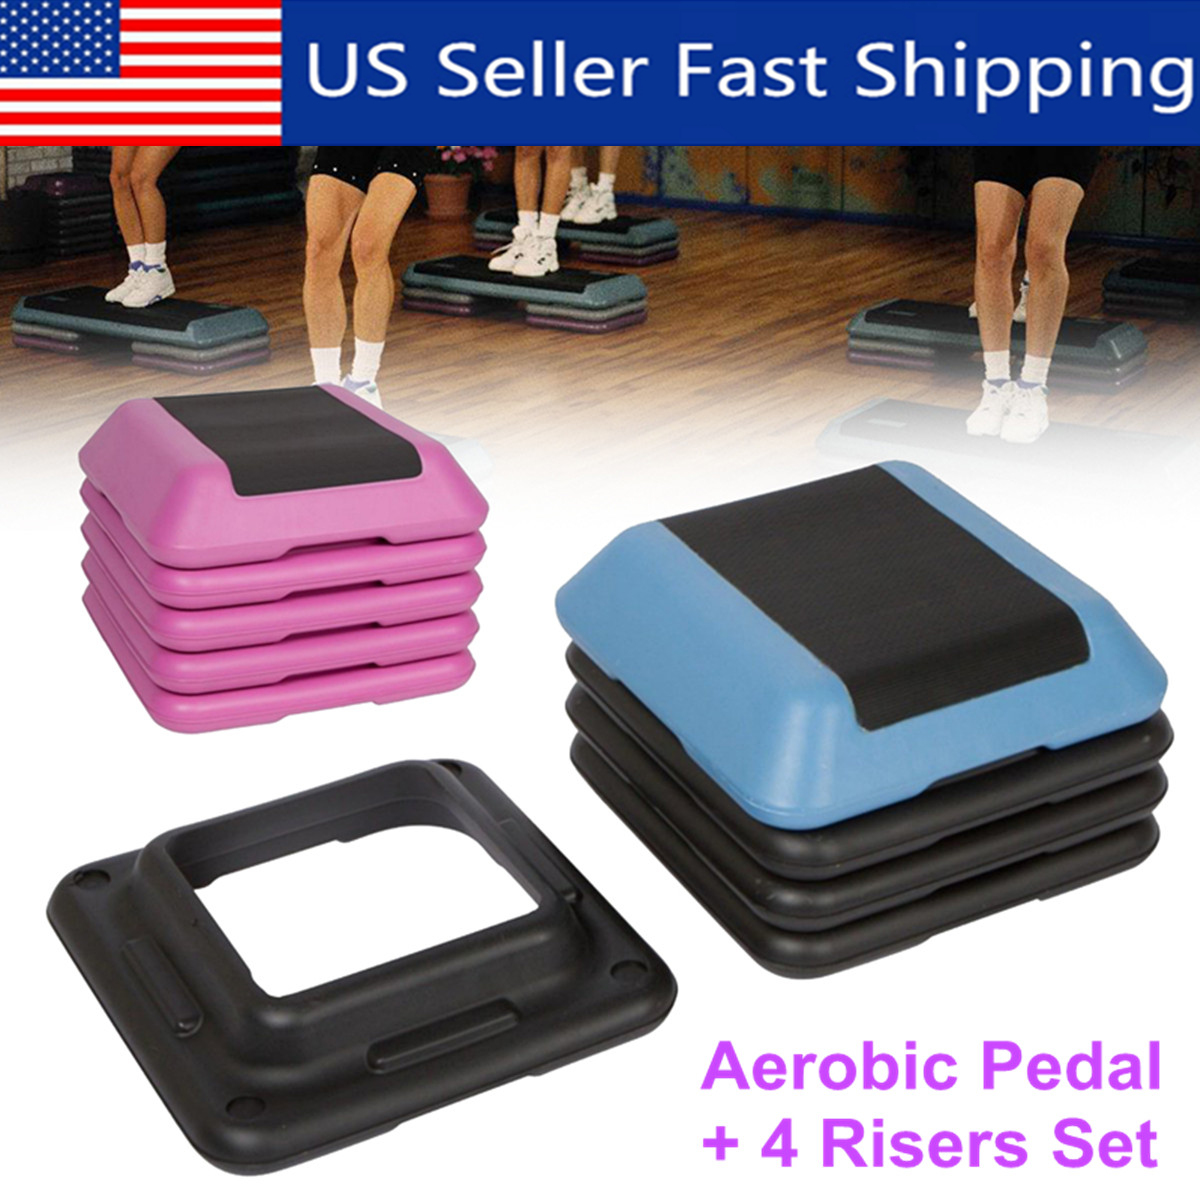 16-039-039-Aerobic-Step-4-Risers-Fitness-Exercise-Stepper-Cardio-Workout-Pedals